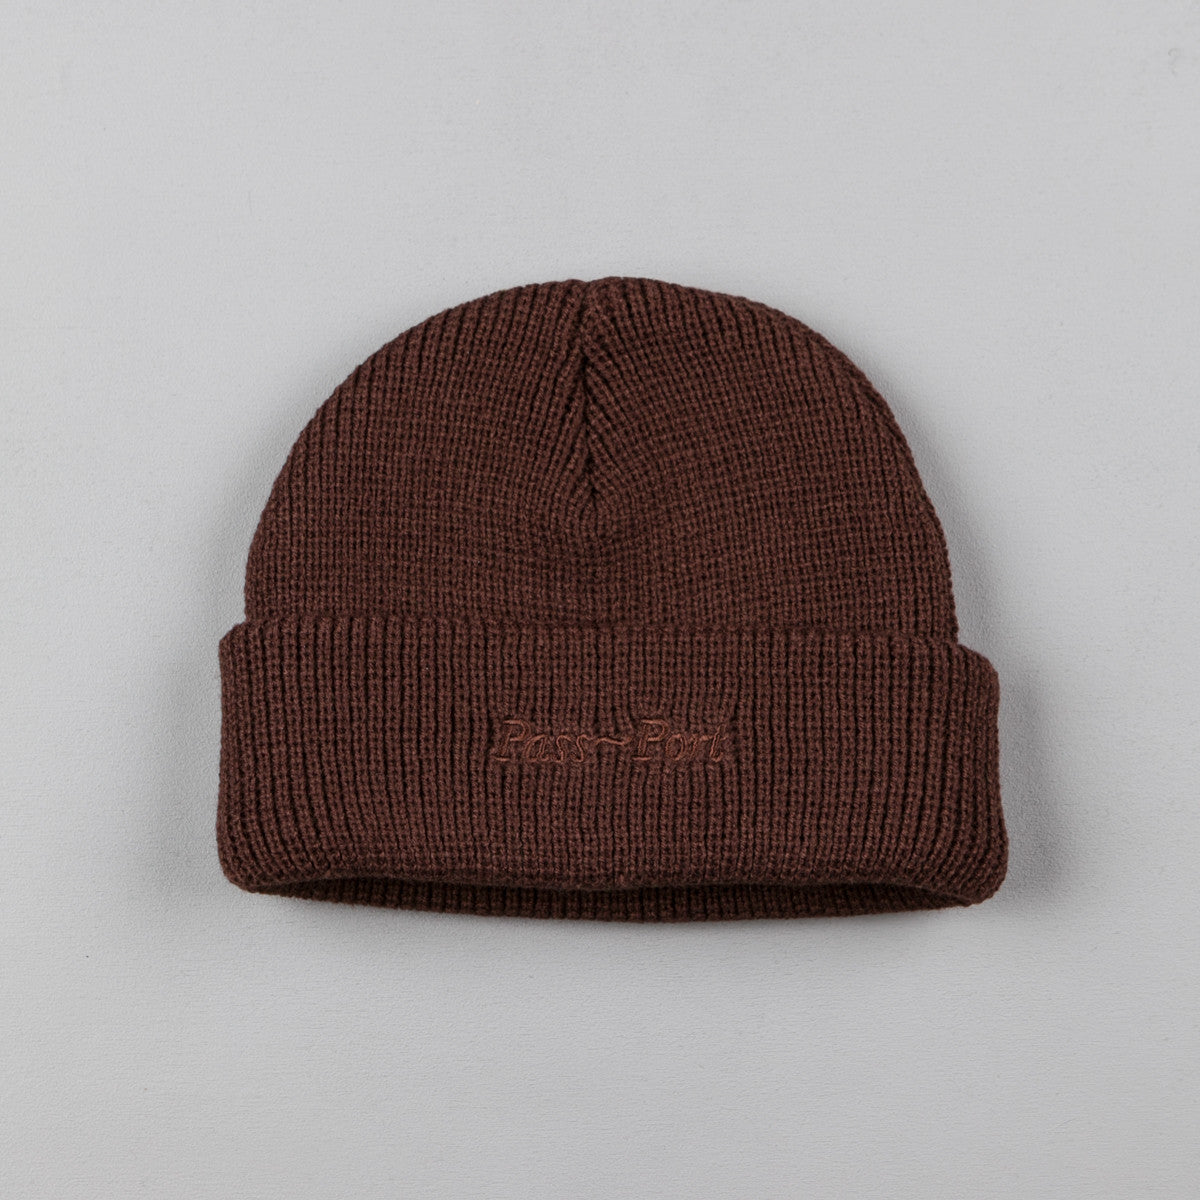 Pass Port Safe P~P Beanie - Chocolate